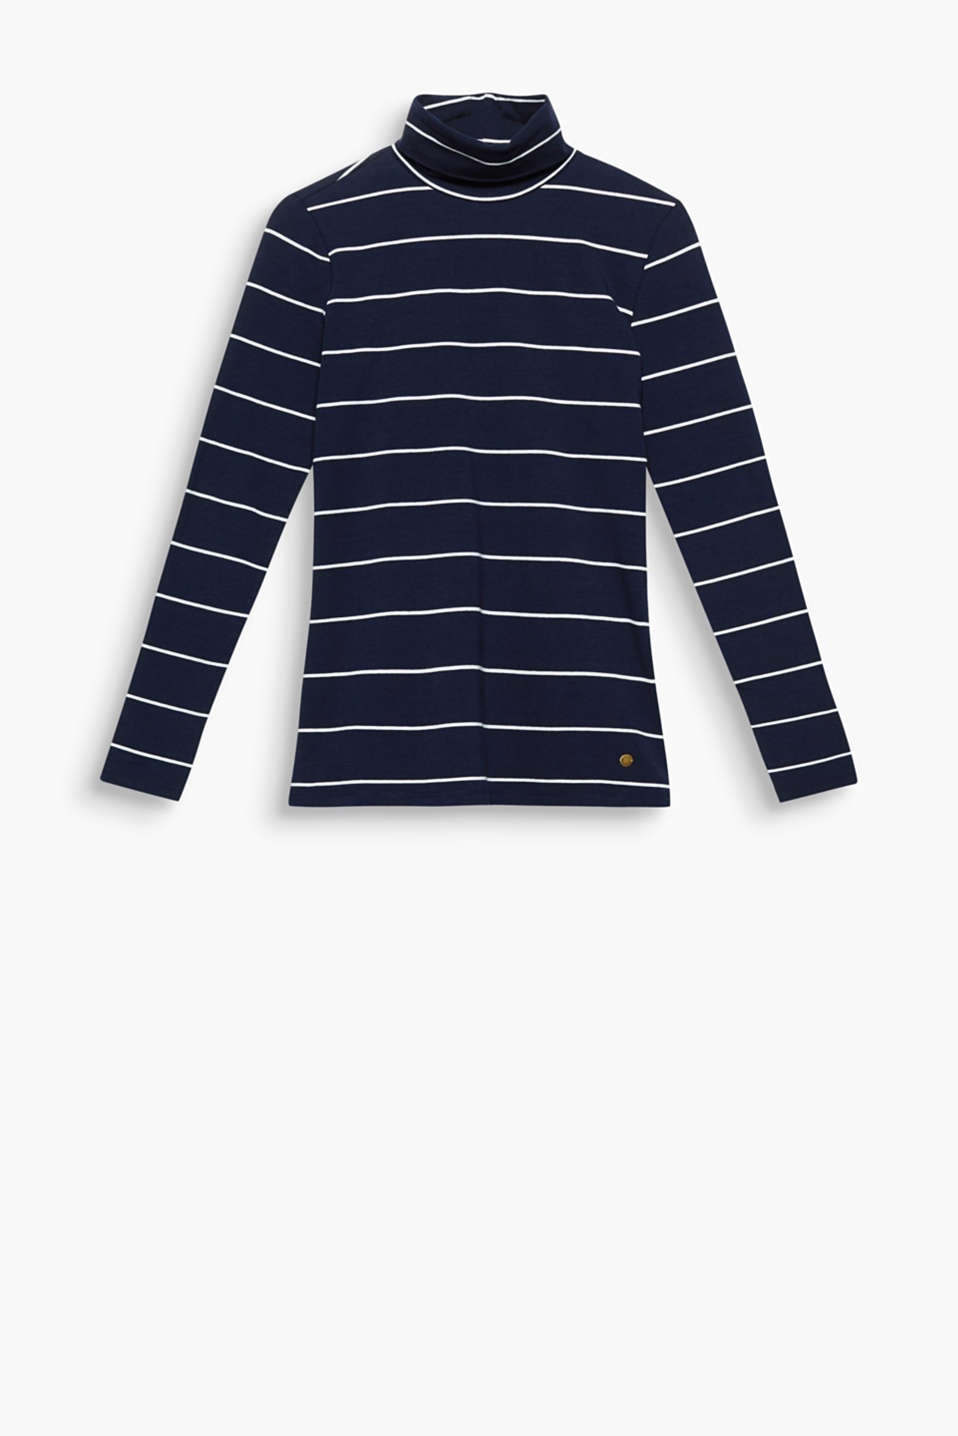 Striped polo neck tops in soft stretch jersey will pep up your outfit – and are extremely comfortable at the same time!